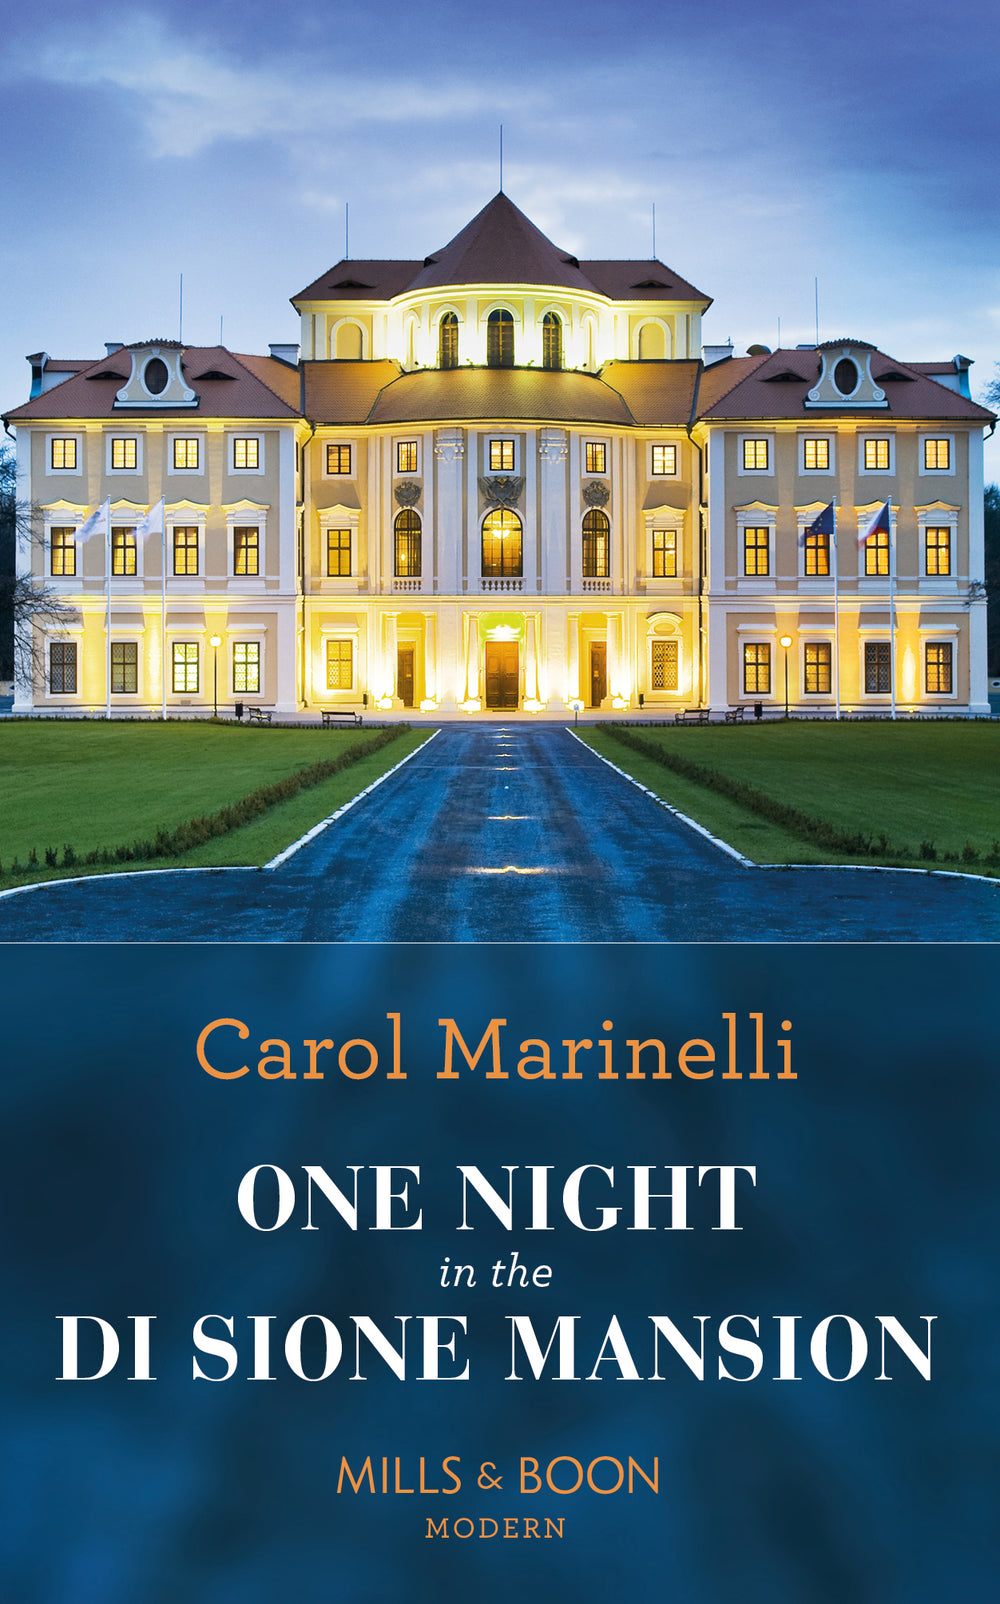 One Night in the Di Sione Mansion - Chapter 15